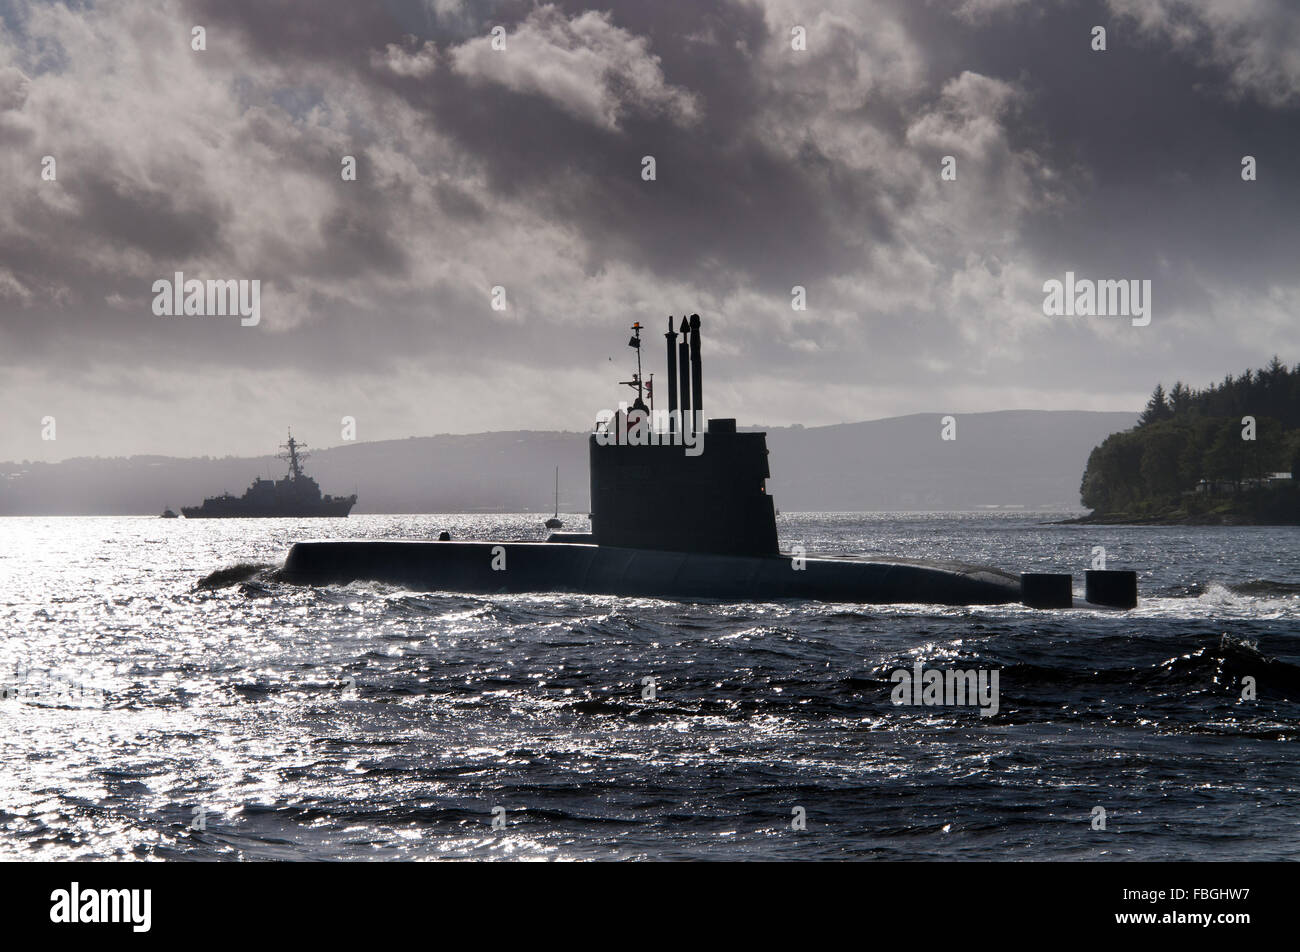 Submarine Ula of the Norwegian Navy and the destroyer USS Nitze - Stock Image